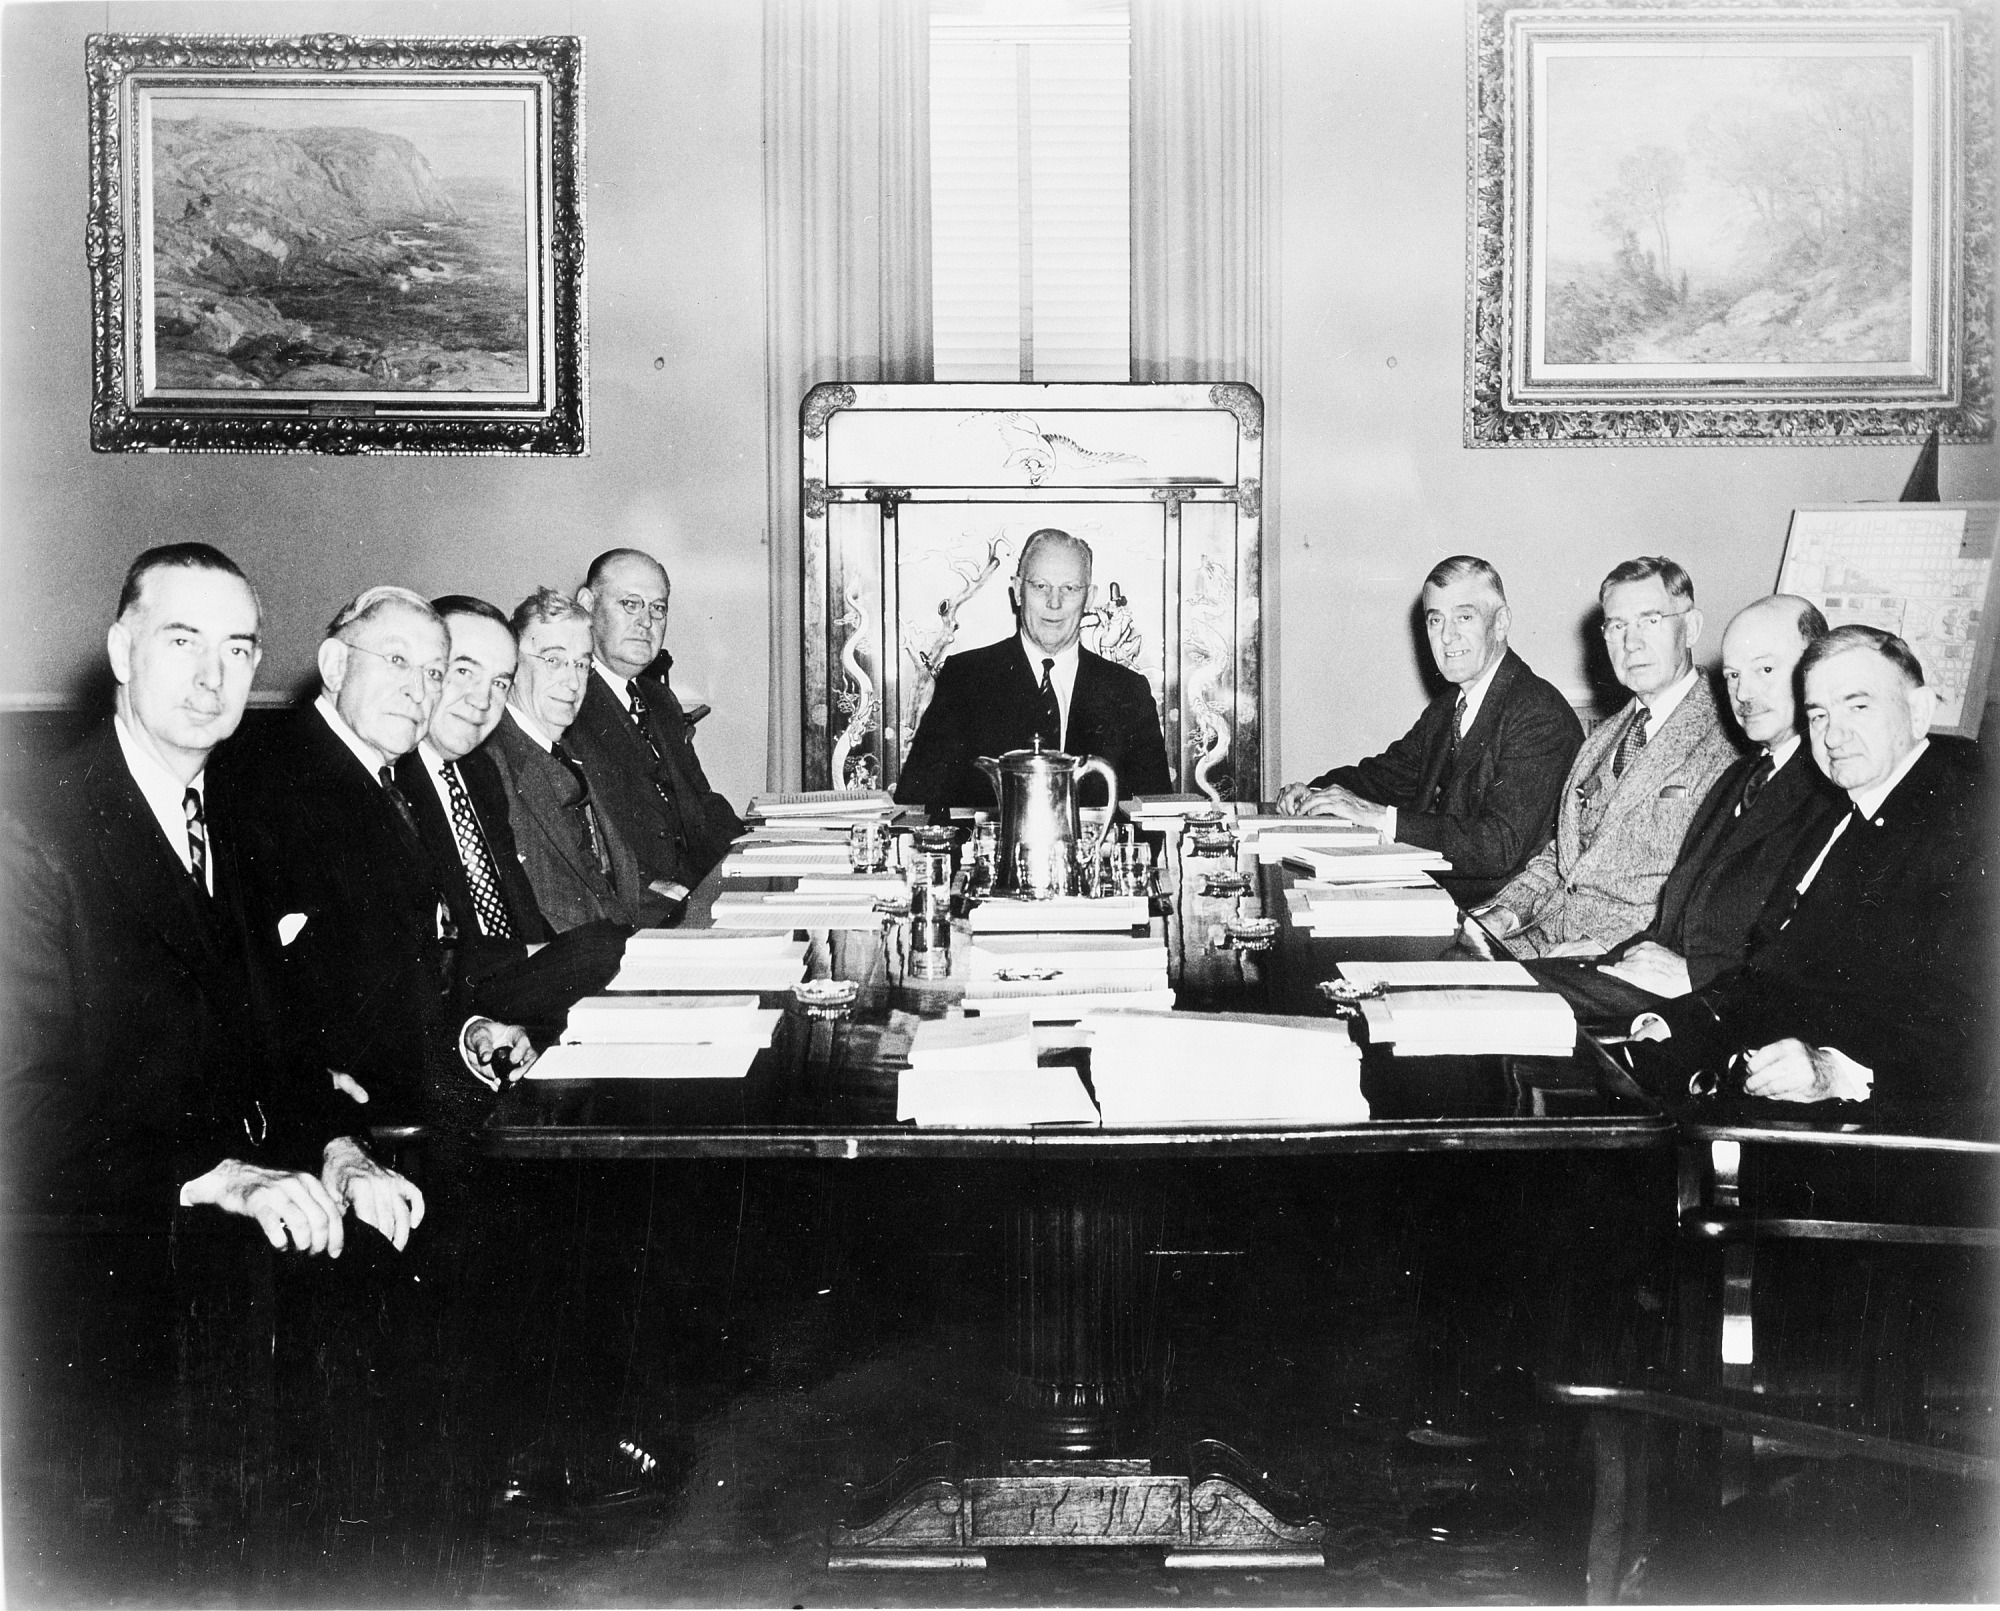 Regents Meeting, 1954